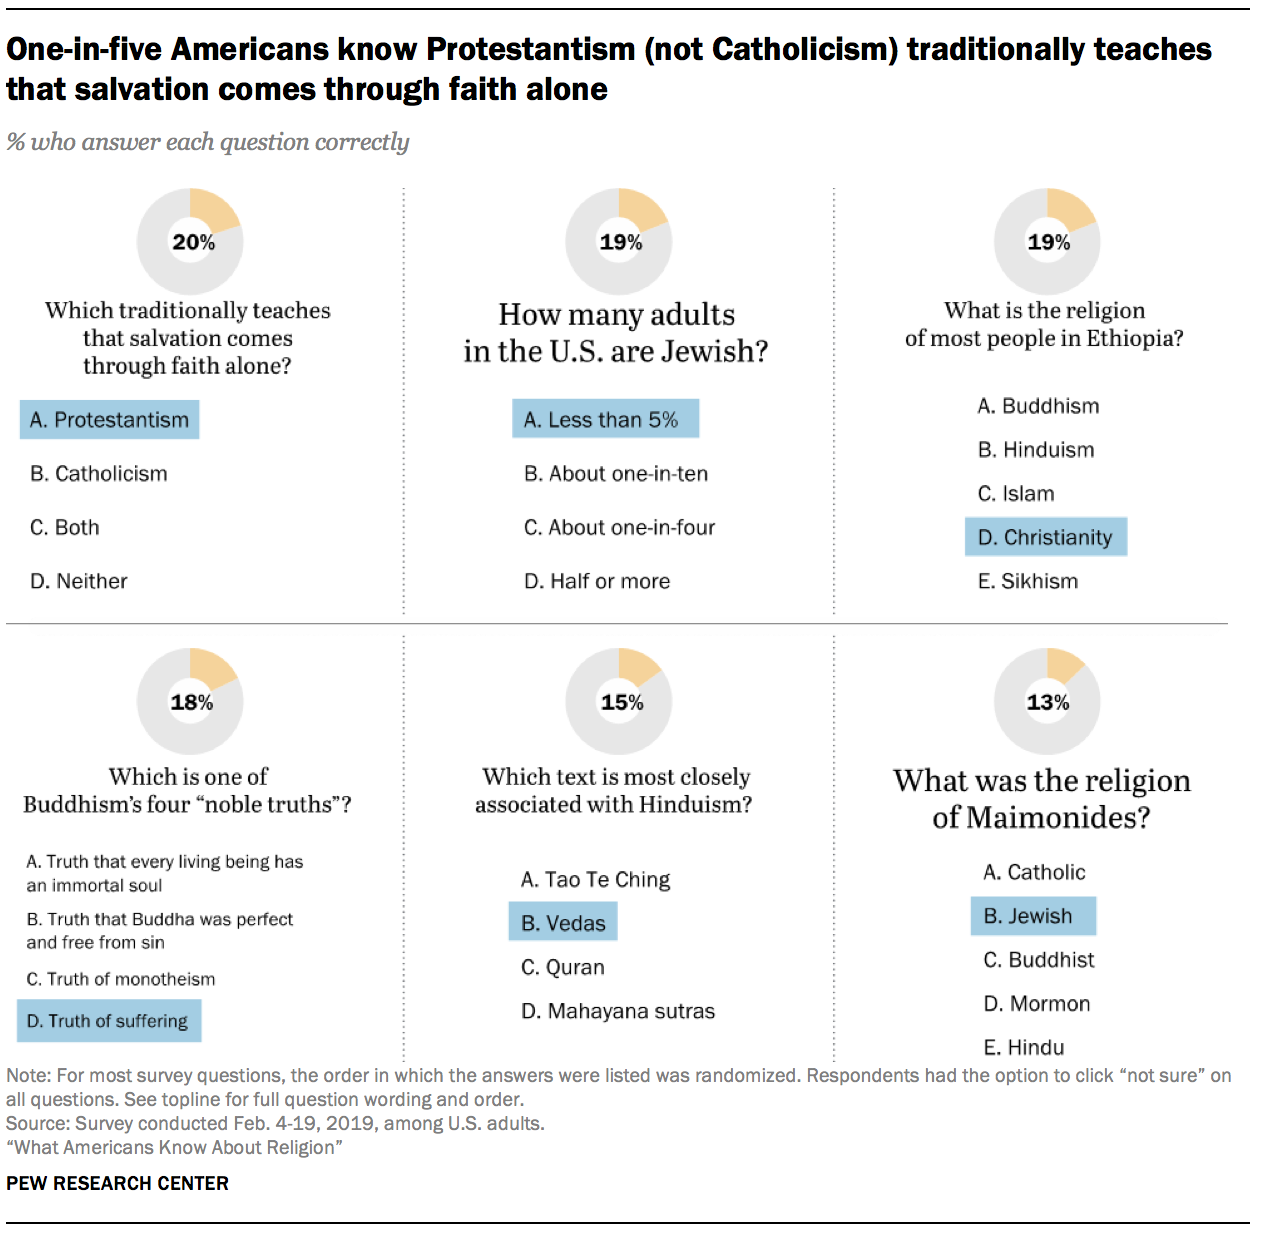 One-in-five Americans know Protestantism (not Catholicism) traditionally teaches that salvation comes through faith alone